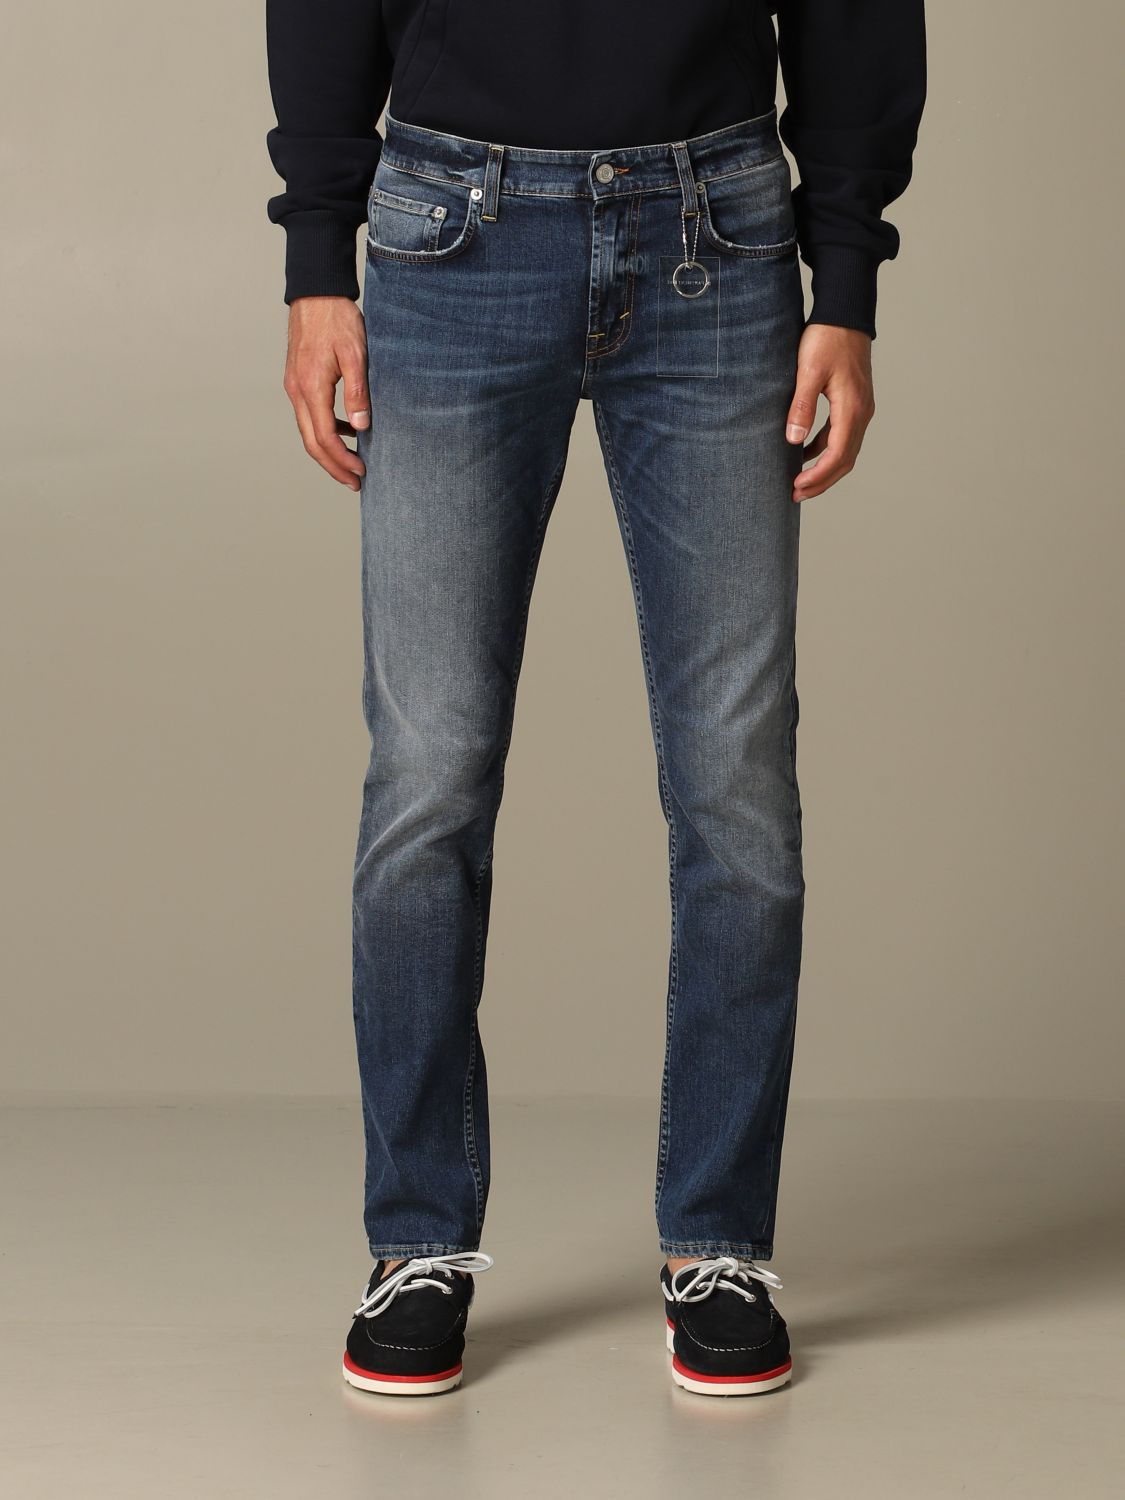 Jeans Department 5: Jeans men Department 5 blue 1